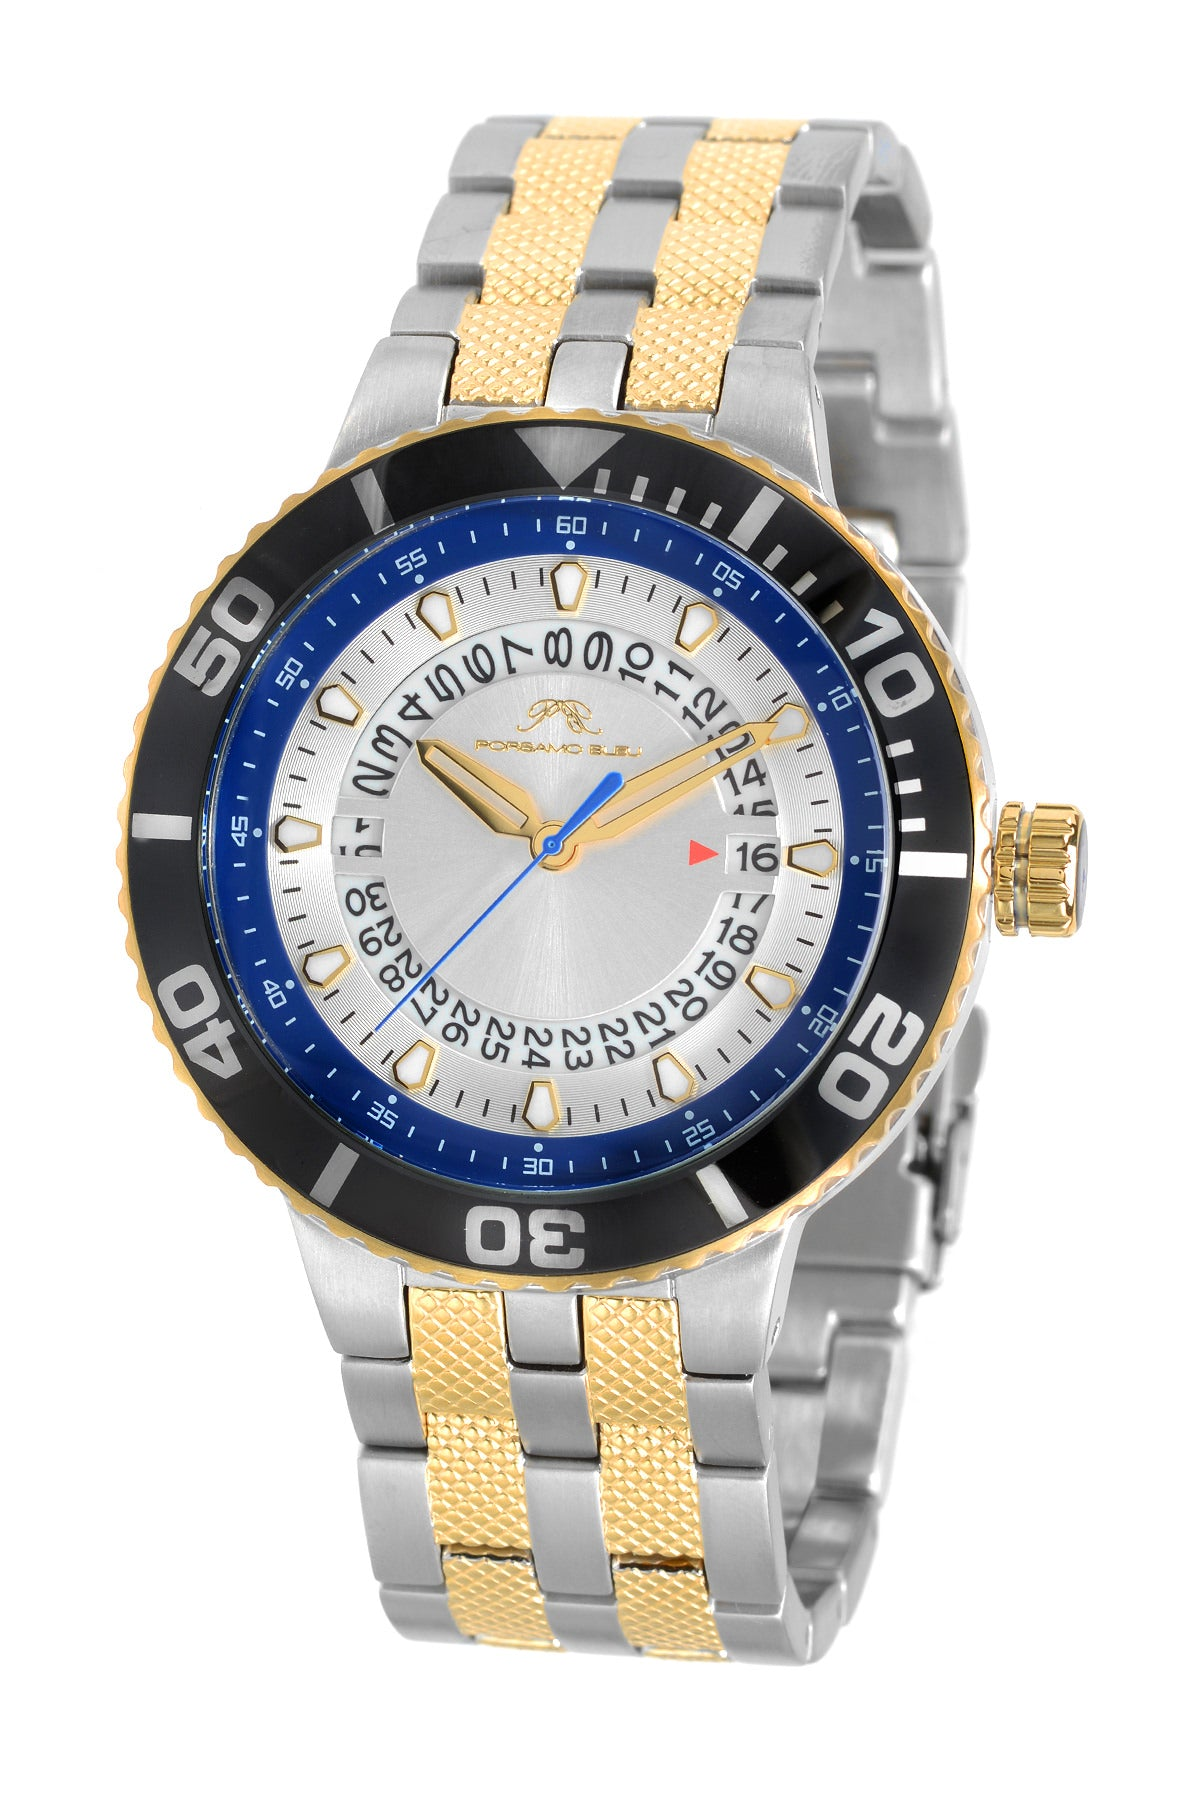 Porsamo Bleu Sebastian luxury men's stainless steel watch, gold, silver, black, blue 462CSES